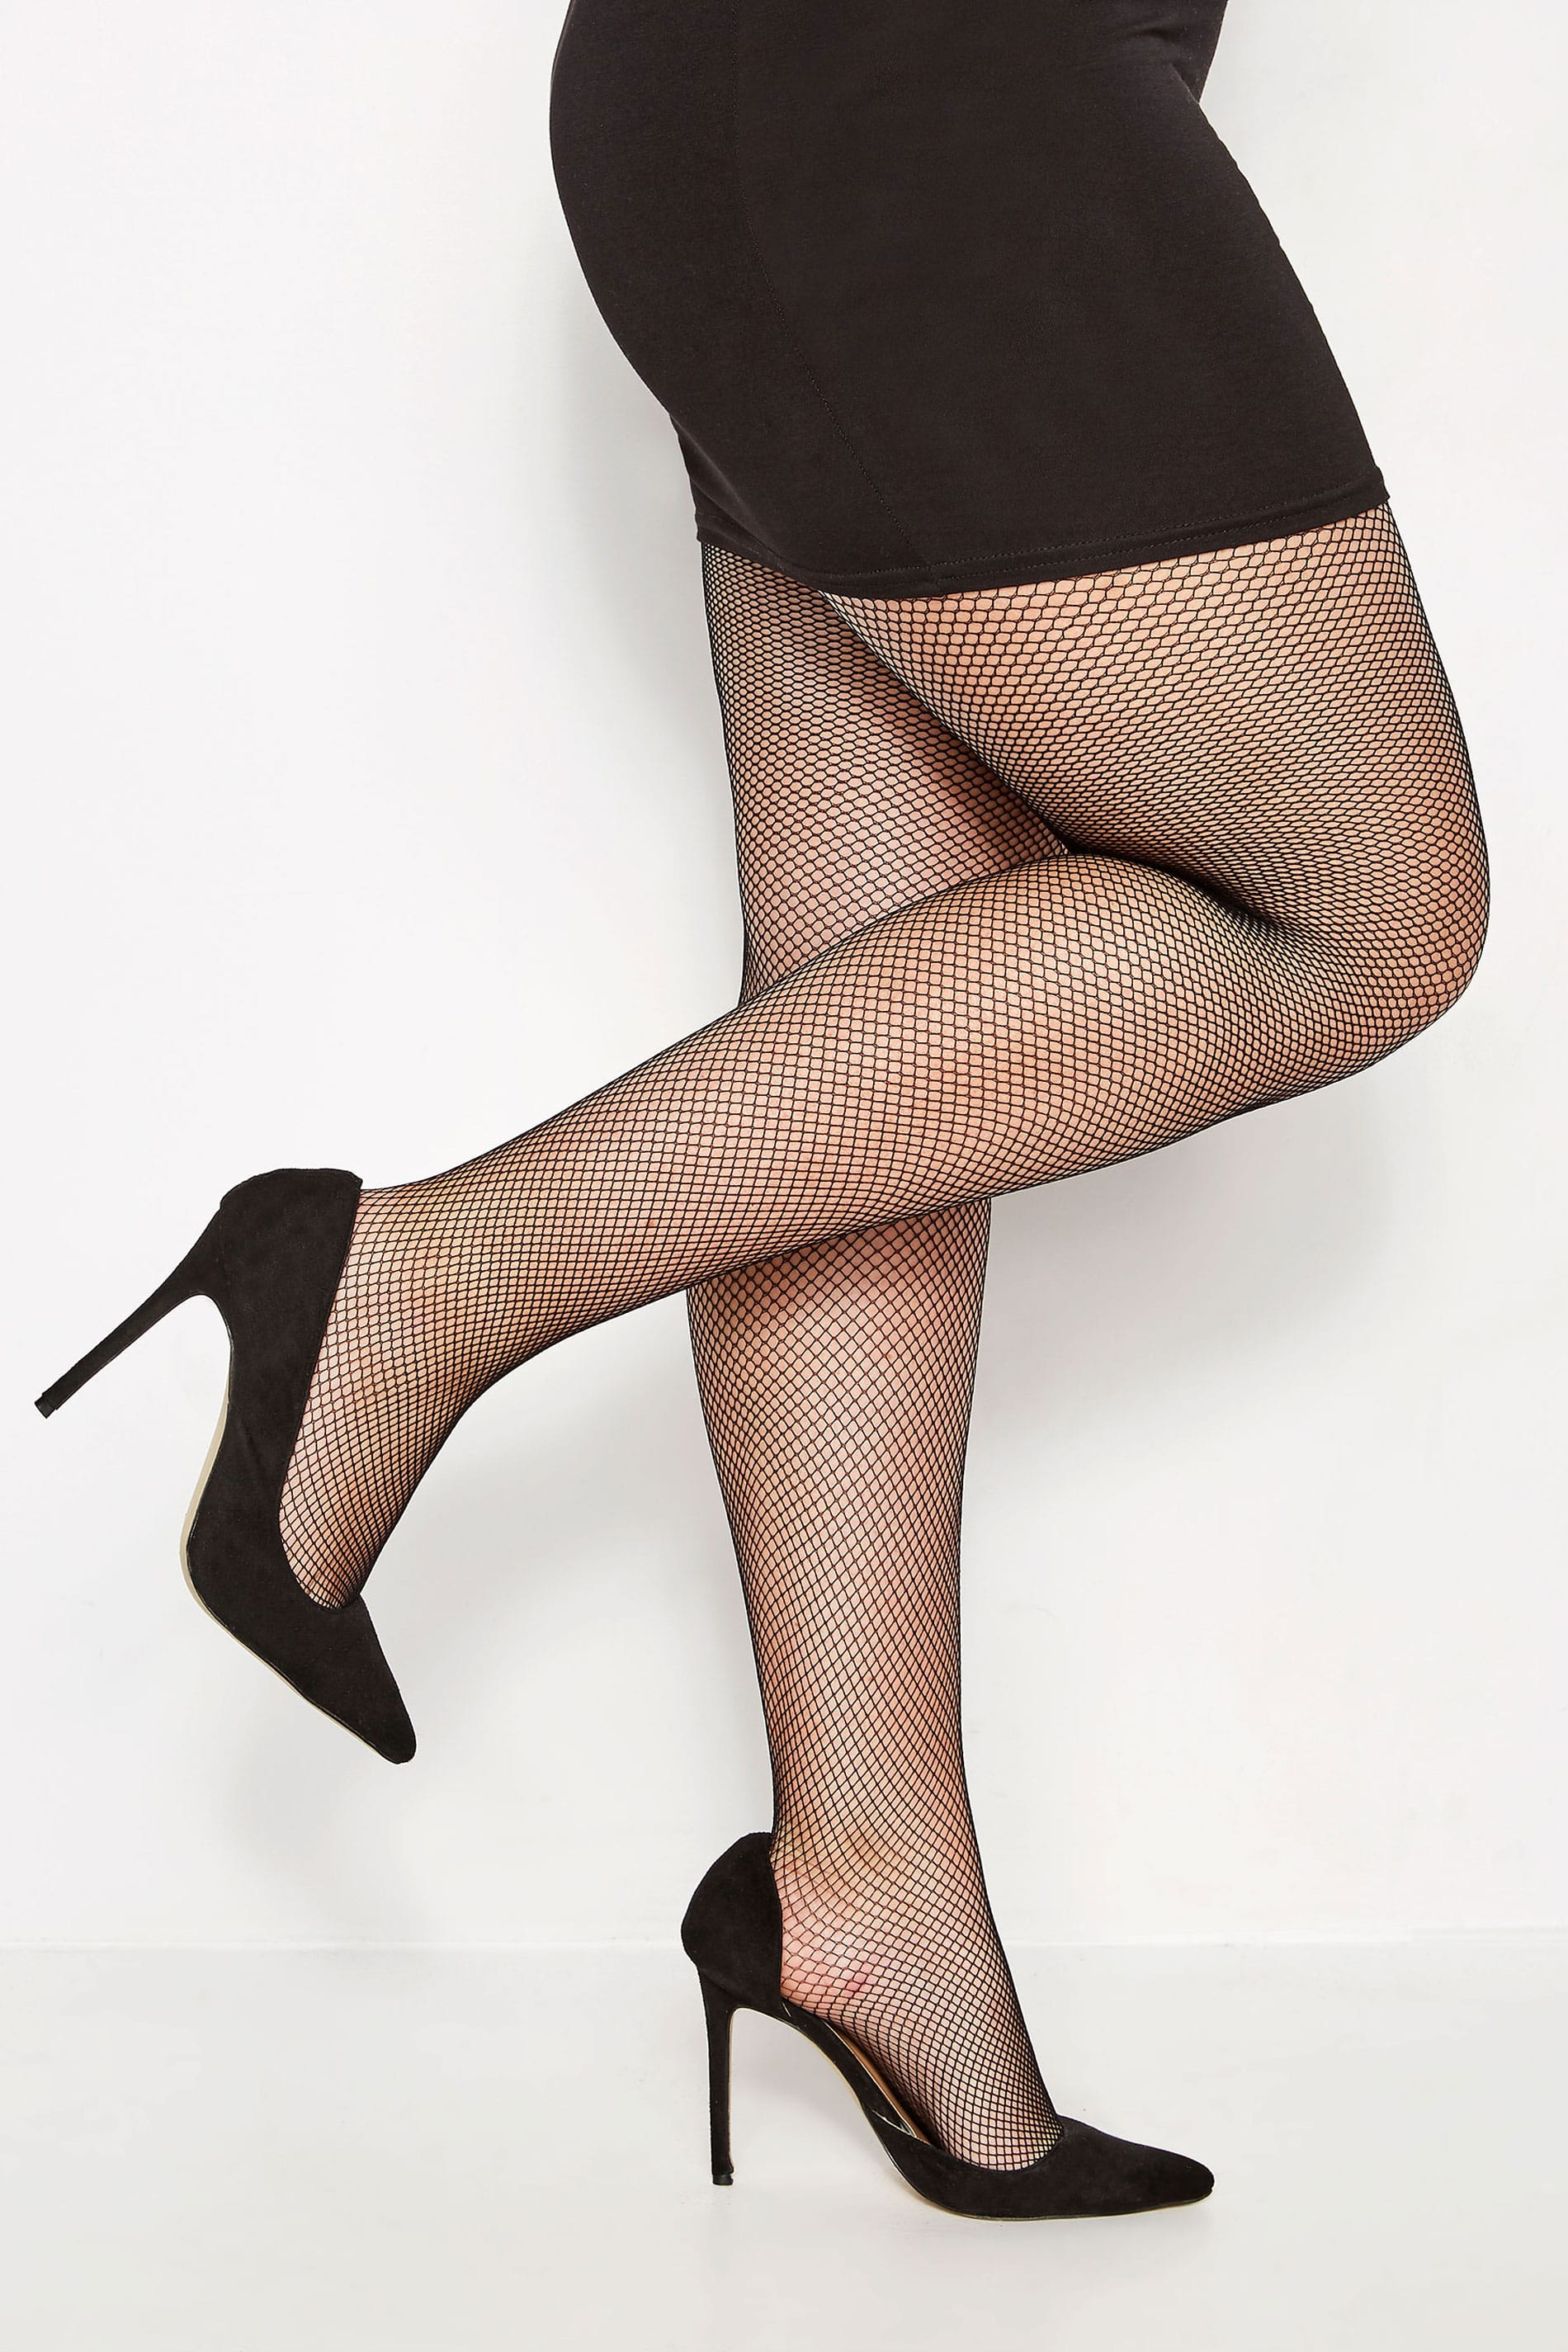 41a22dad04217 Black Fishnet Tights, Plus size 16 to 32